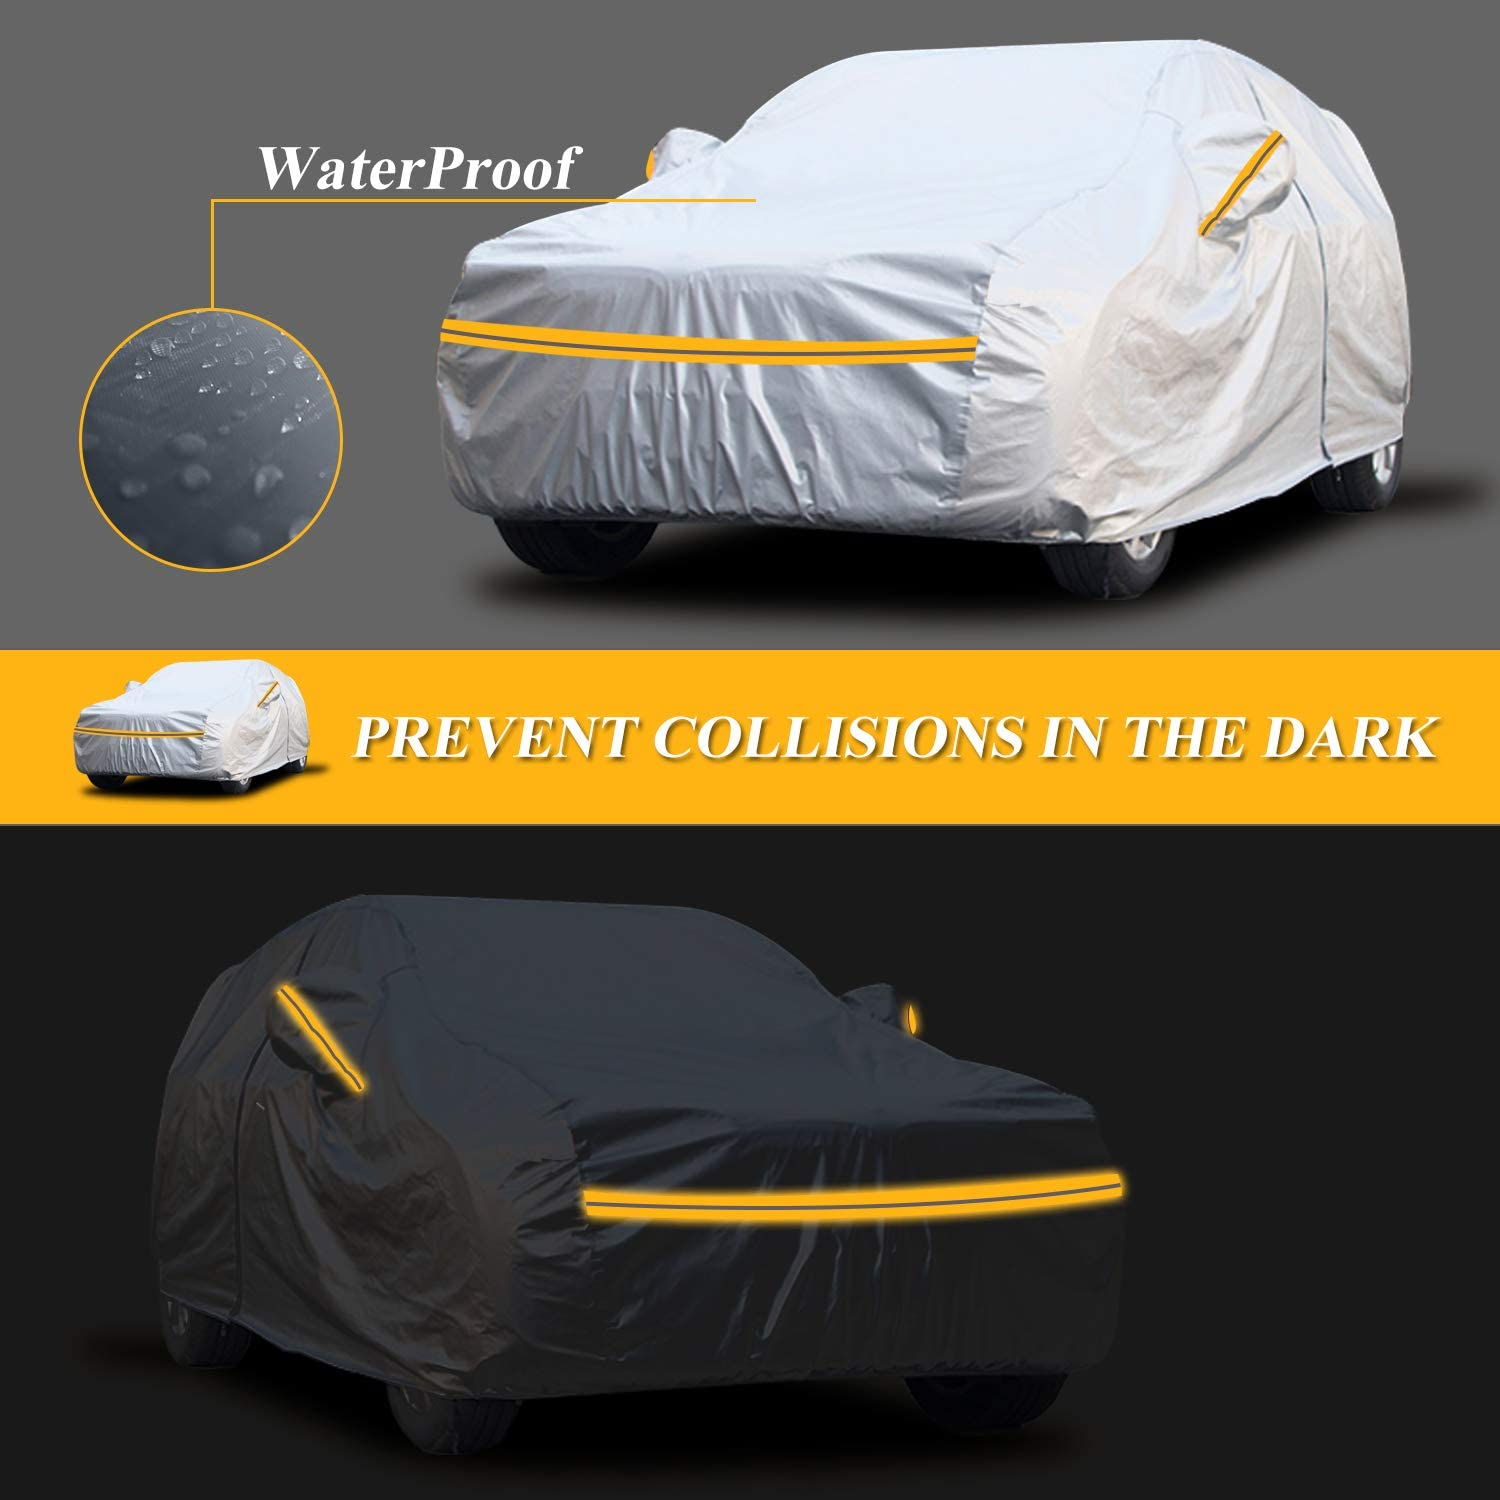 Special Car Cover for Audi A1 2010-2018 All Weather Full Coverage Breathable Windproof Waterproof Dustproof Scratch Resistant UV Protection Outdoor/&Indoor Cover Yellow